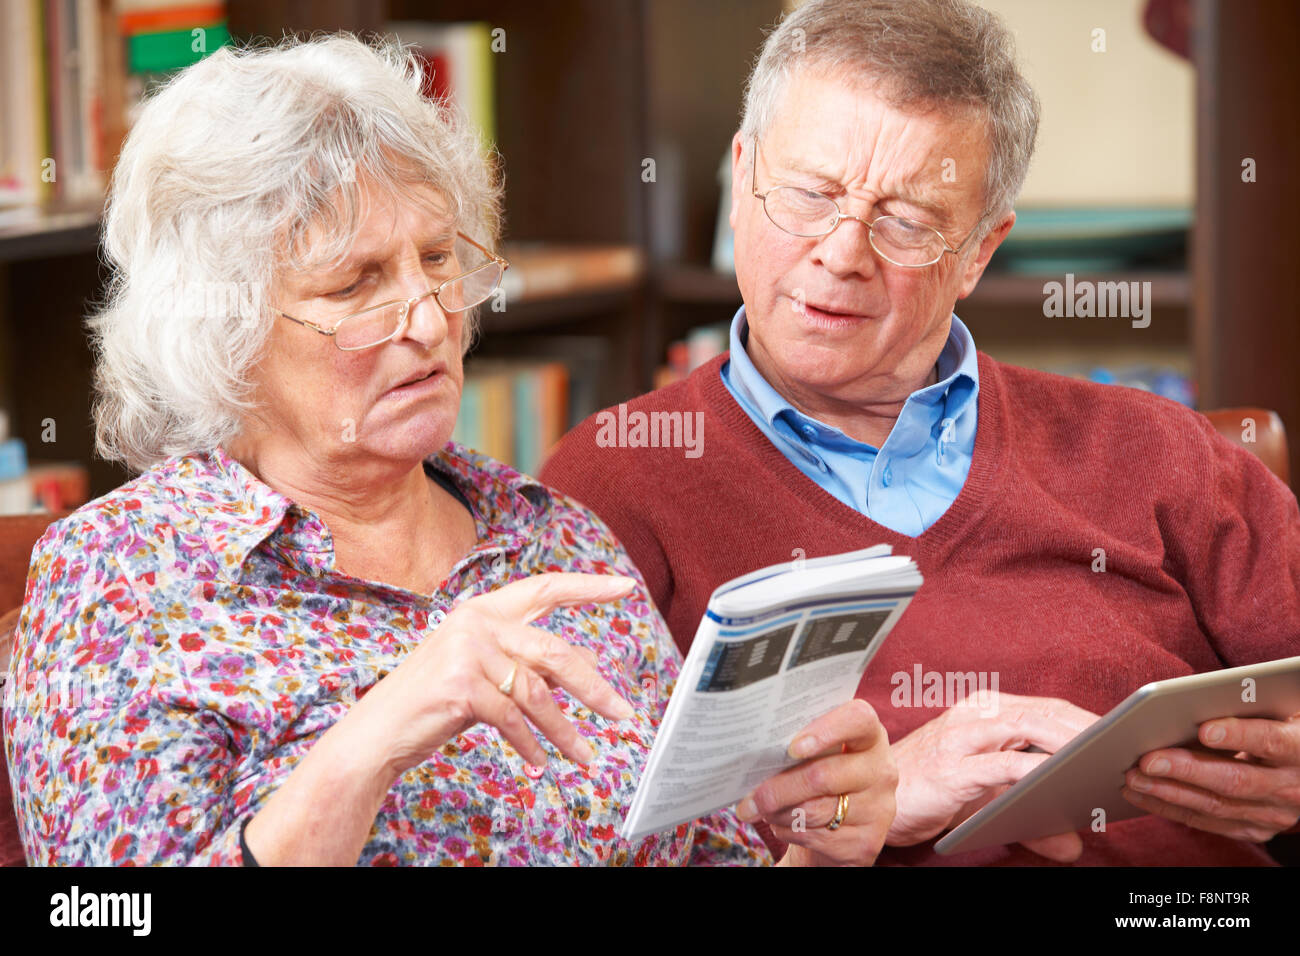 Confused Senior Couple Trying To Operate Mobile Phone - Stock Image